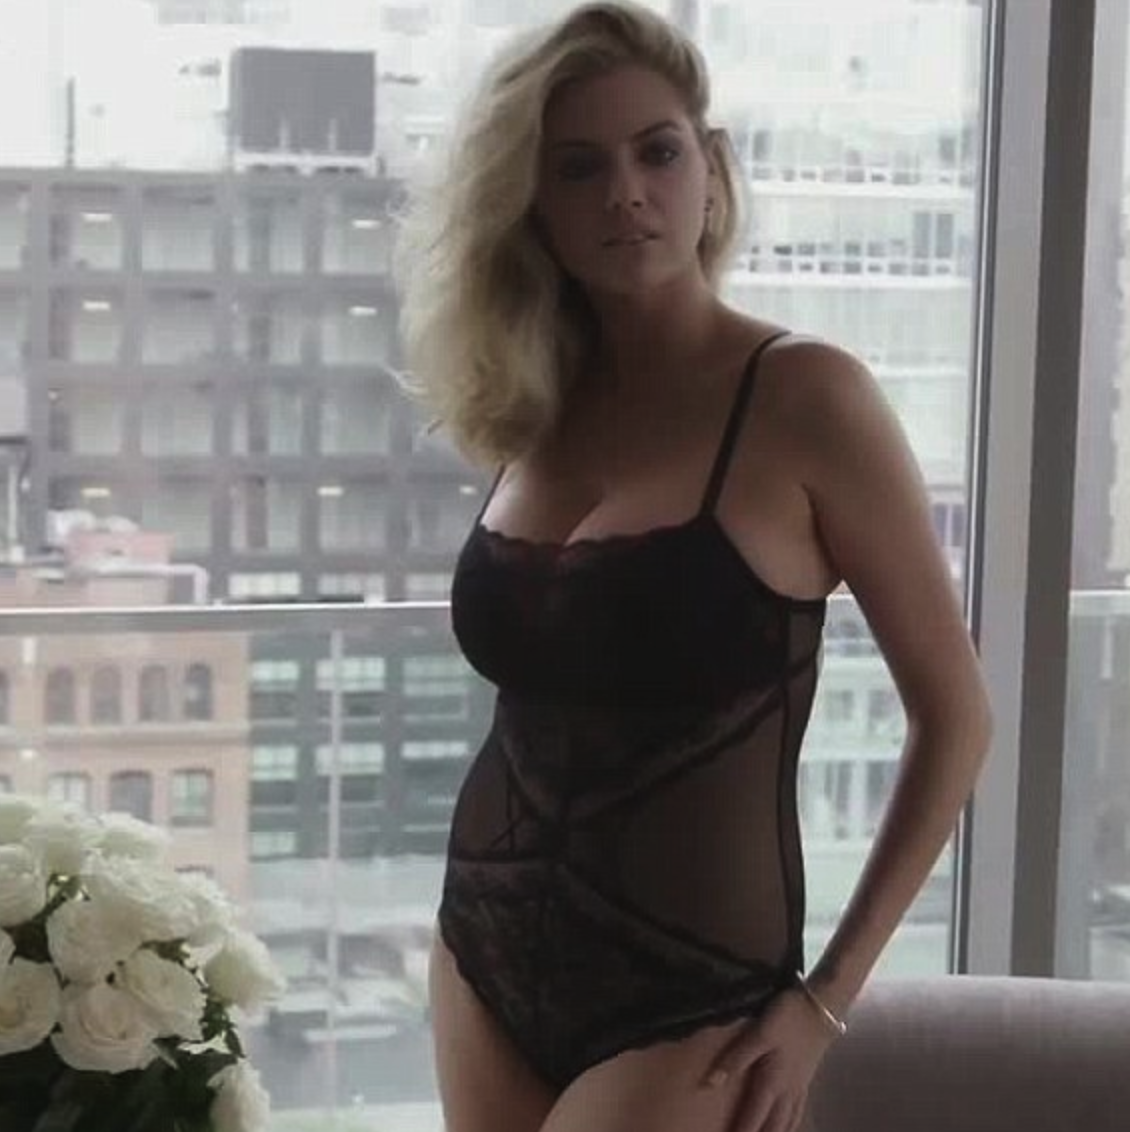 Kate Upton Poses in Black Underwear for New Instagram Post [PICS & VIDEO]